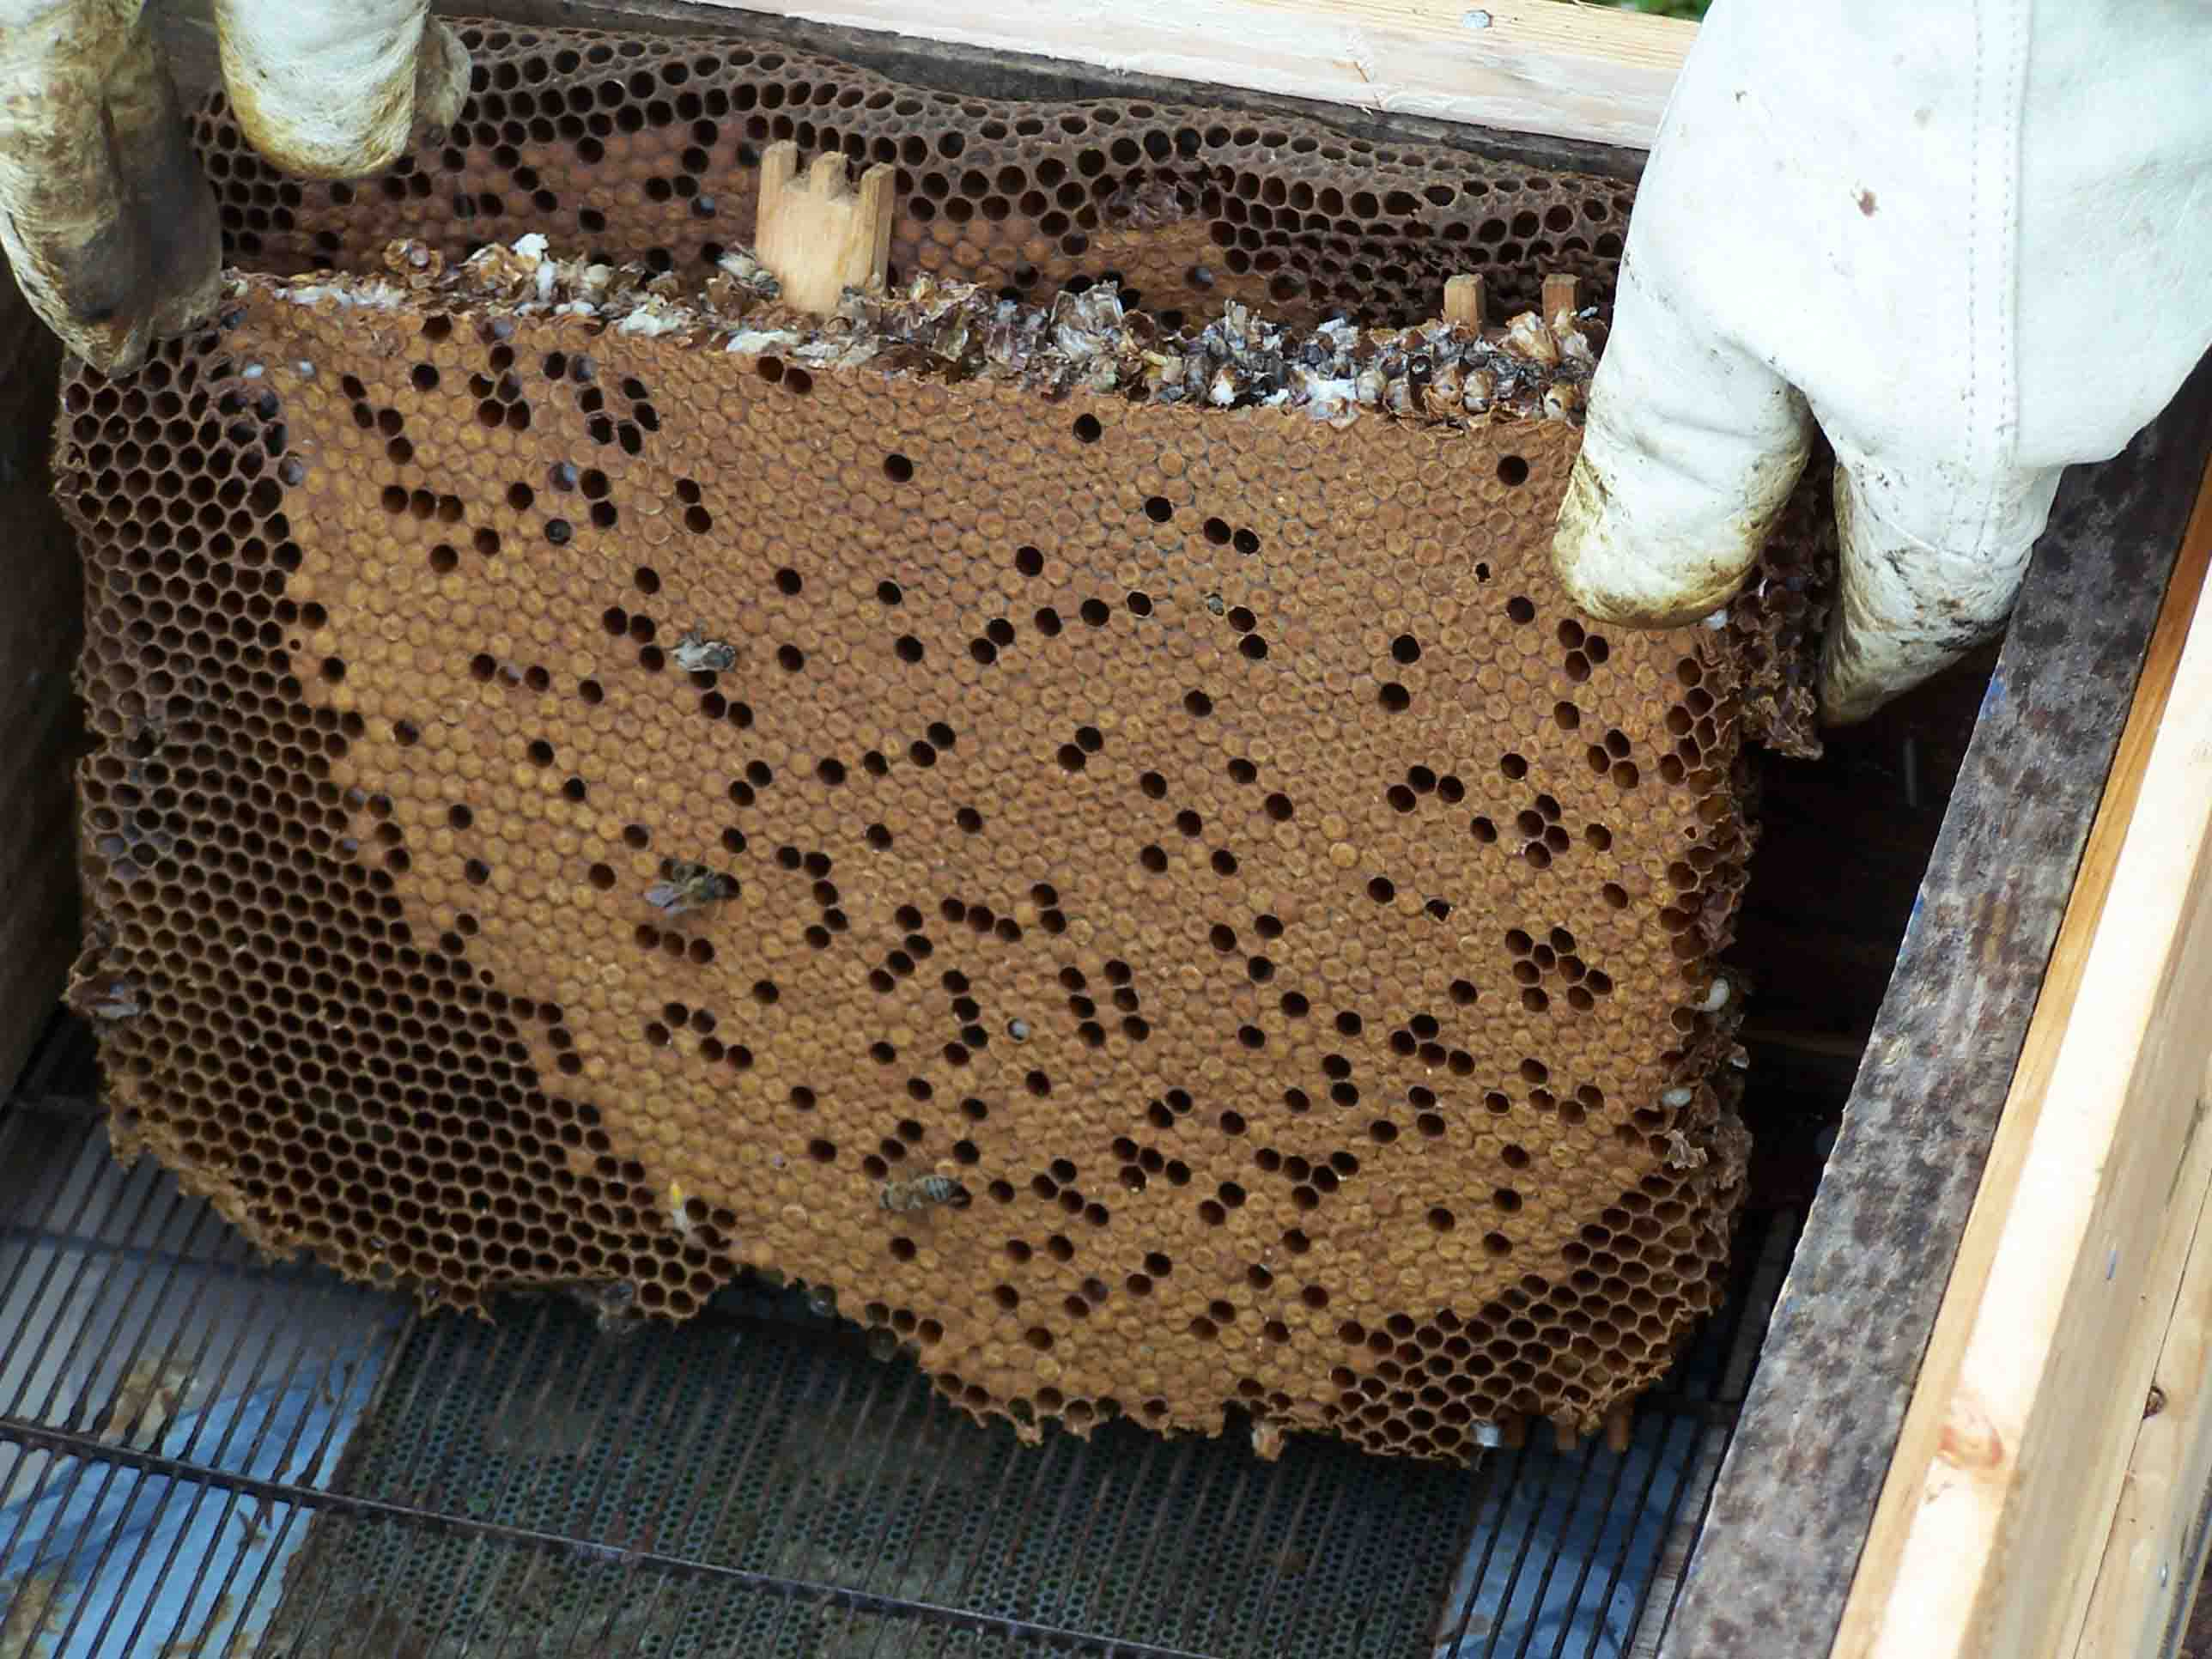 Puting The Comb Into A Brood Box